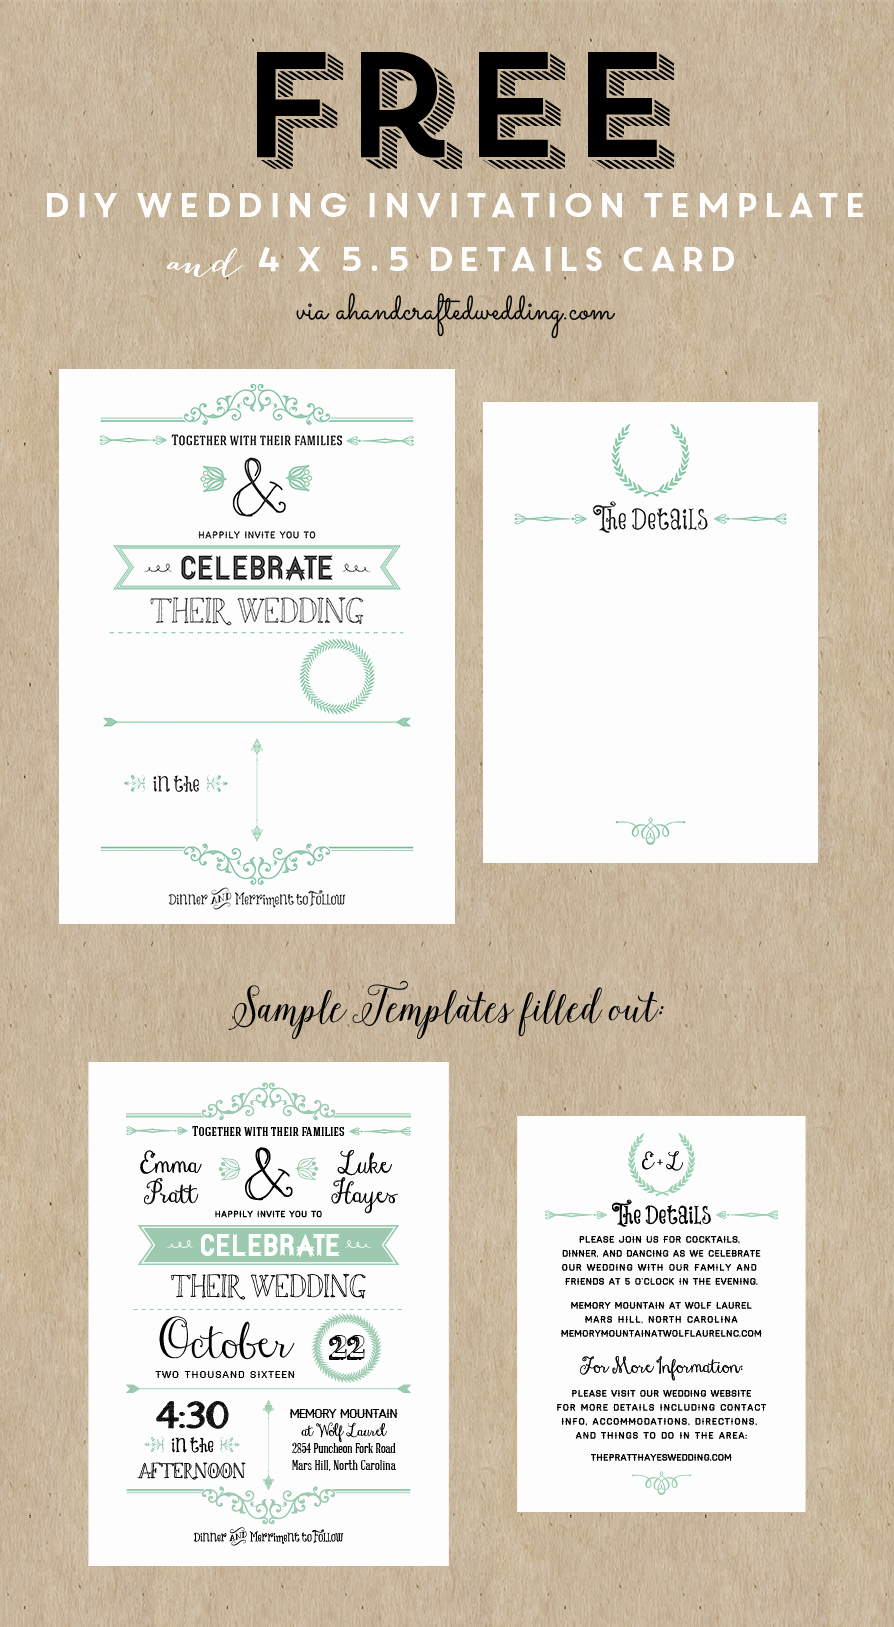 Free Wedding Invitation Templates Downloads Luxury Best 25 Free Wedding Invitation Templates Ideas On